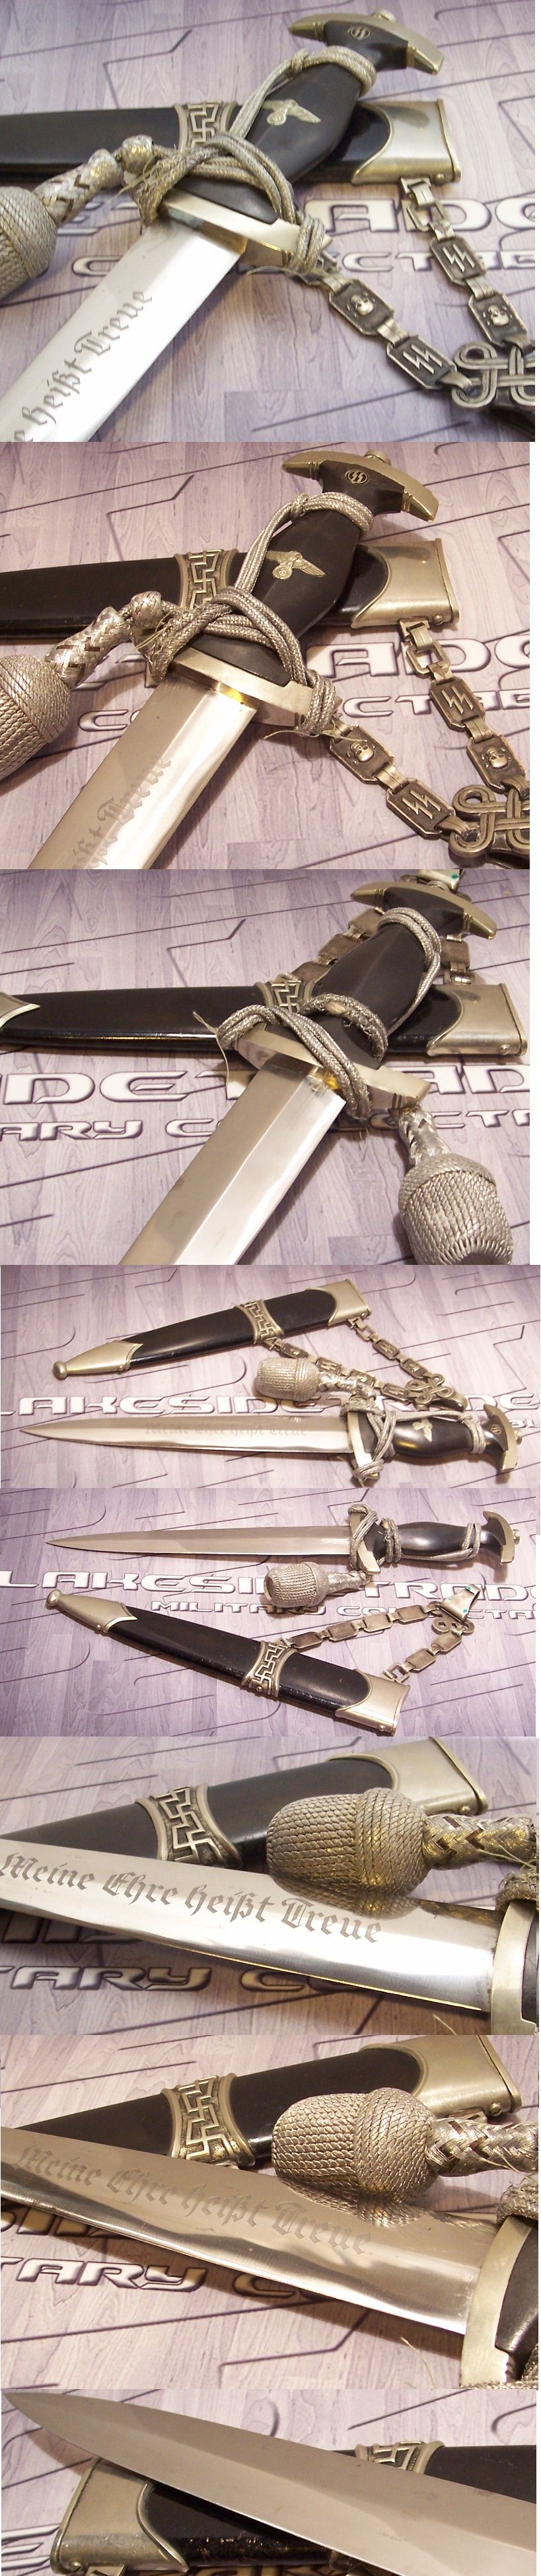 Type II Chained SS Dagger owned by an Officer